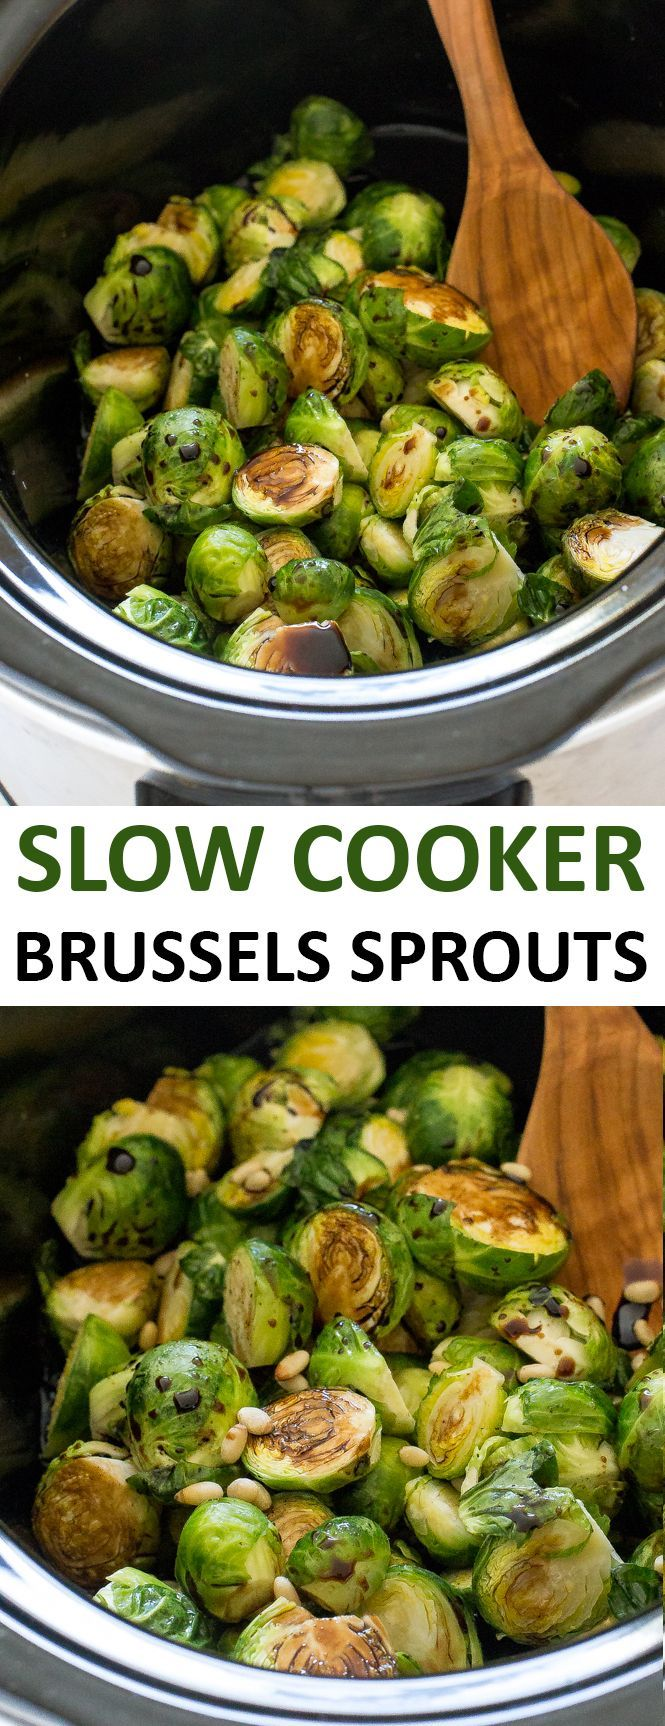 Super Easy Slow Cooker Balsamic Brussels Sprouts. Vegan without the parmesan